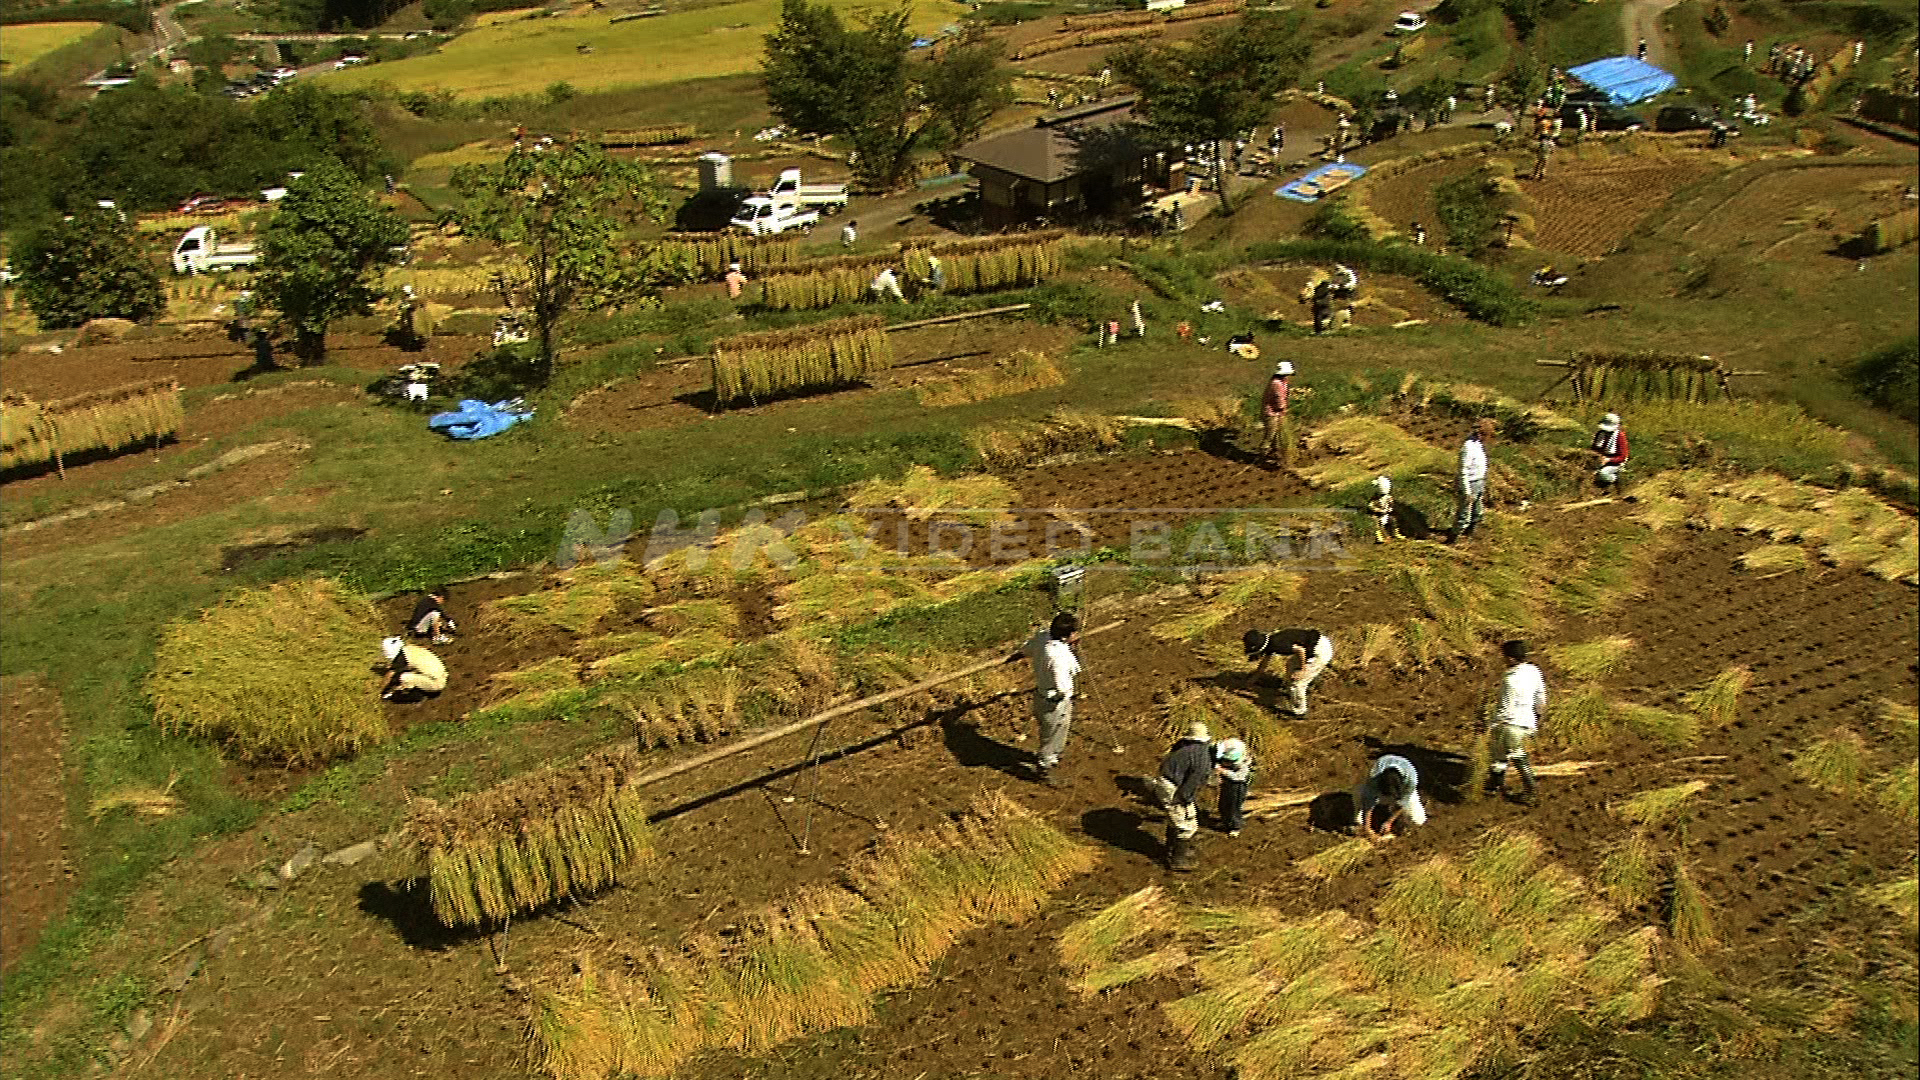 Crane shot: harvesting rice at the terraced rice paddies in Nagano